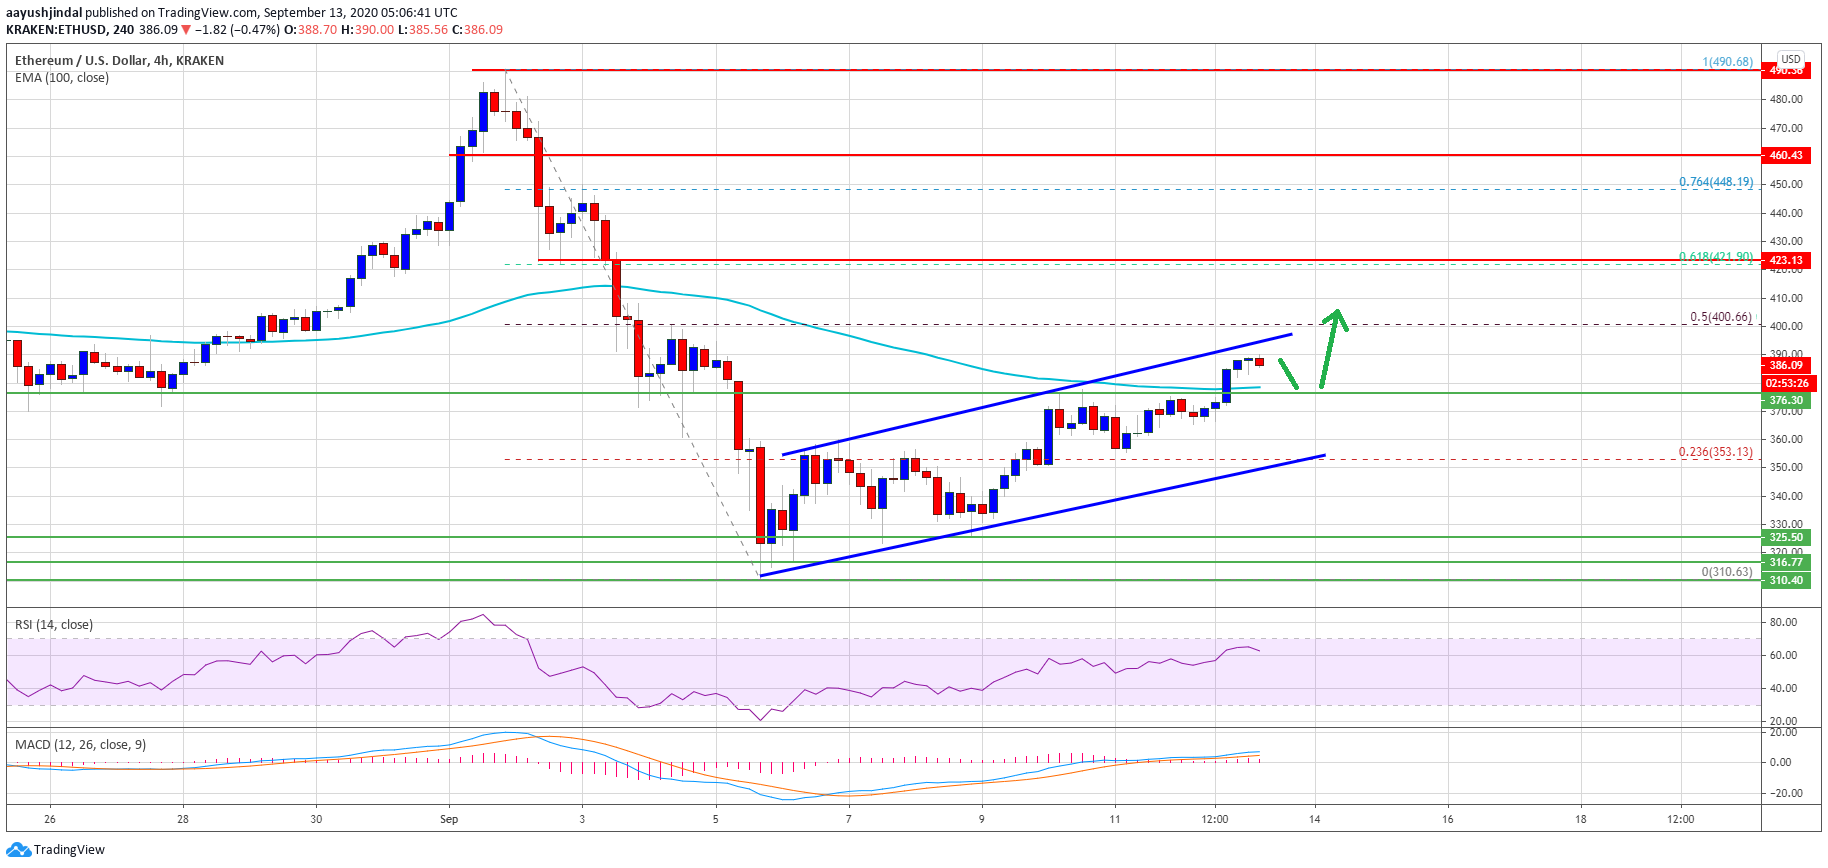 Ethereum Breaks Crucial Resistance, Technical Suggest More Upsides Above $400